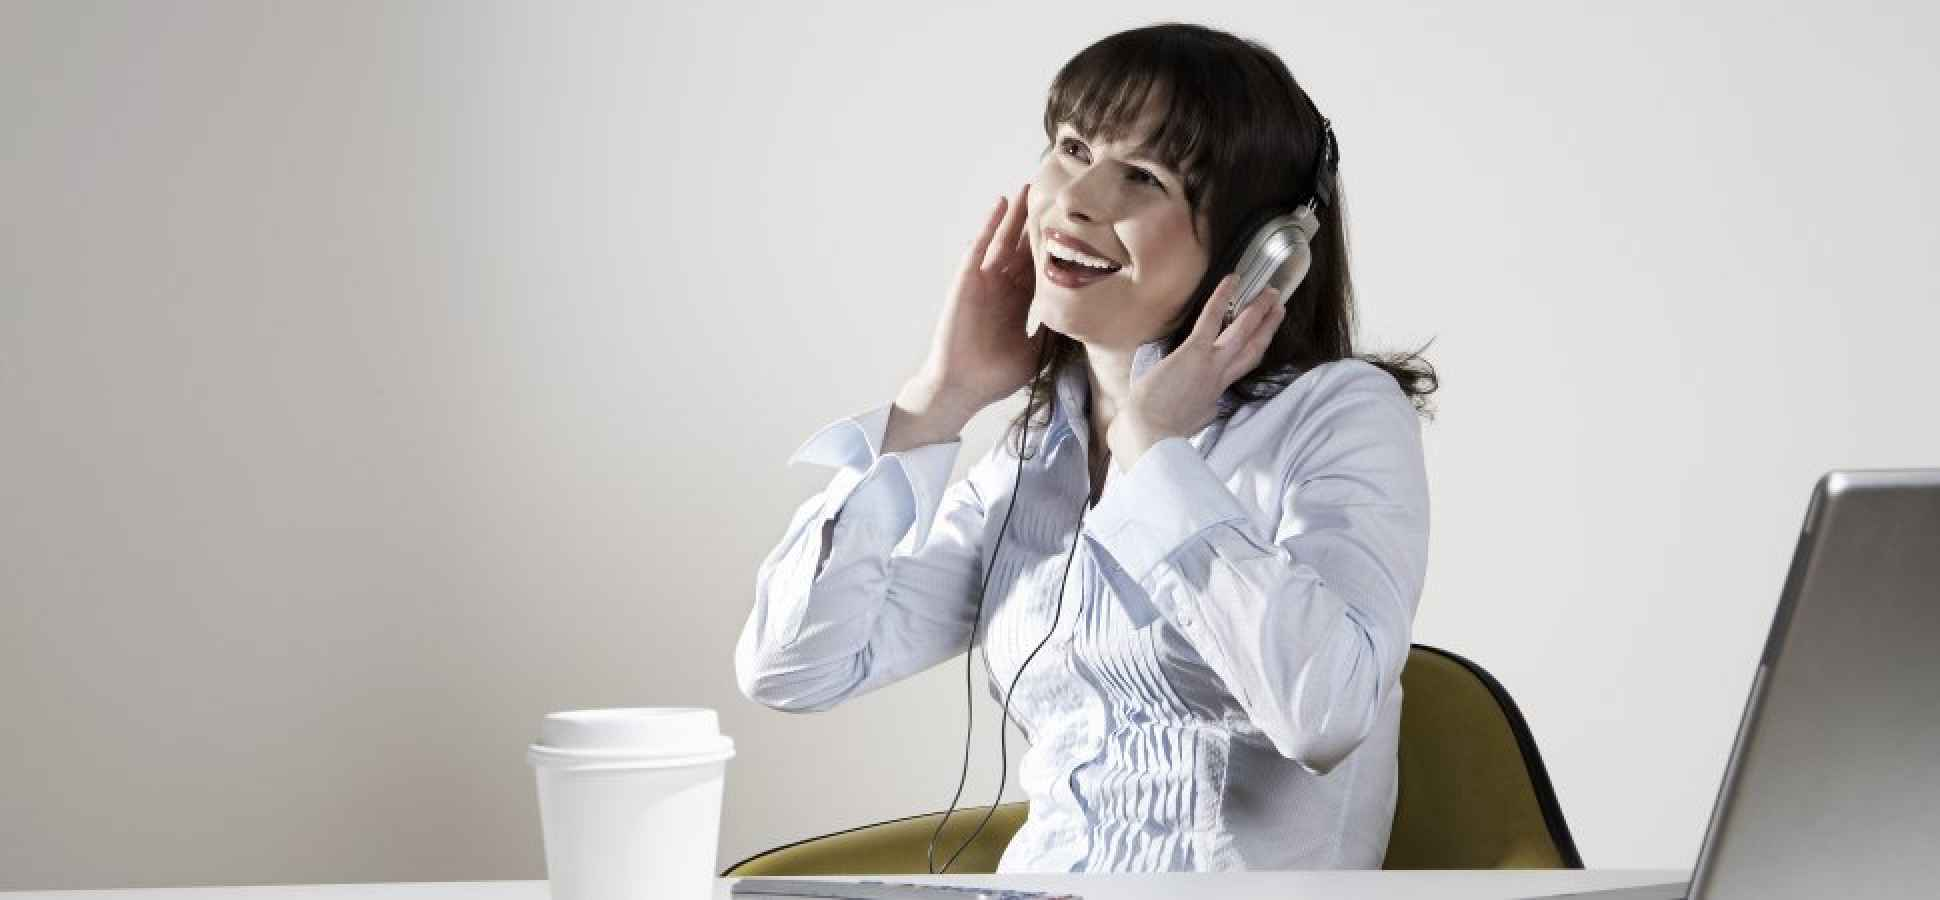 10 Songs to Pump Up Your Productivity Right Now